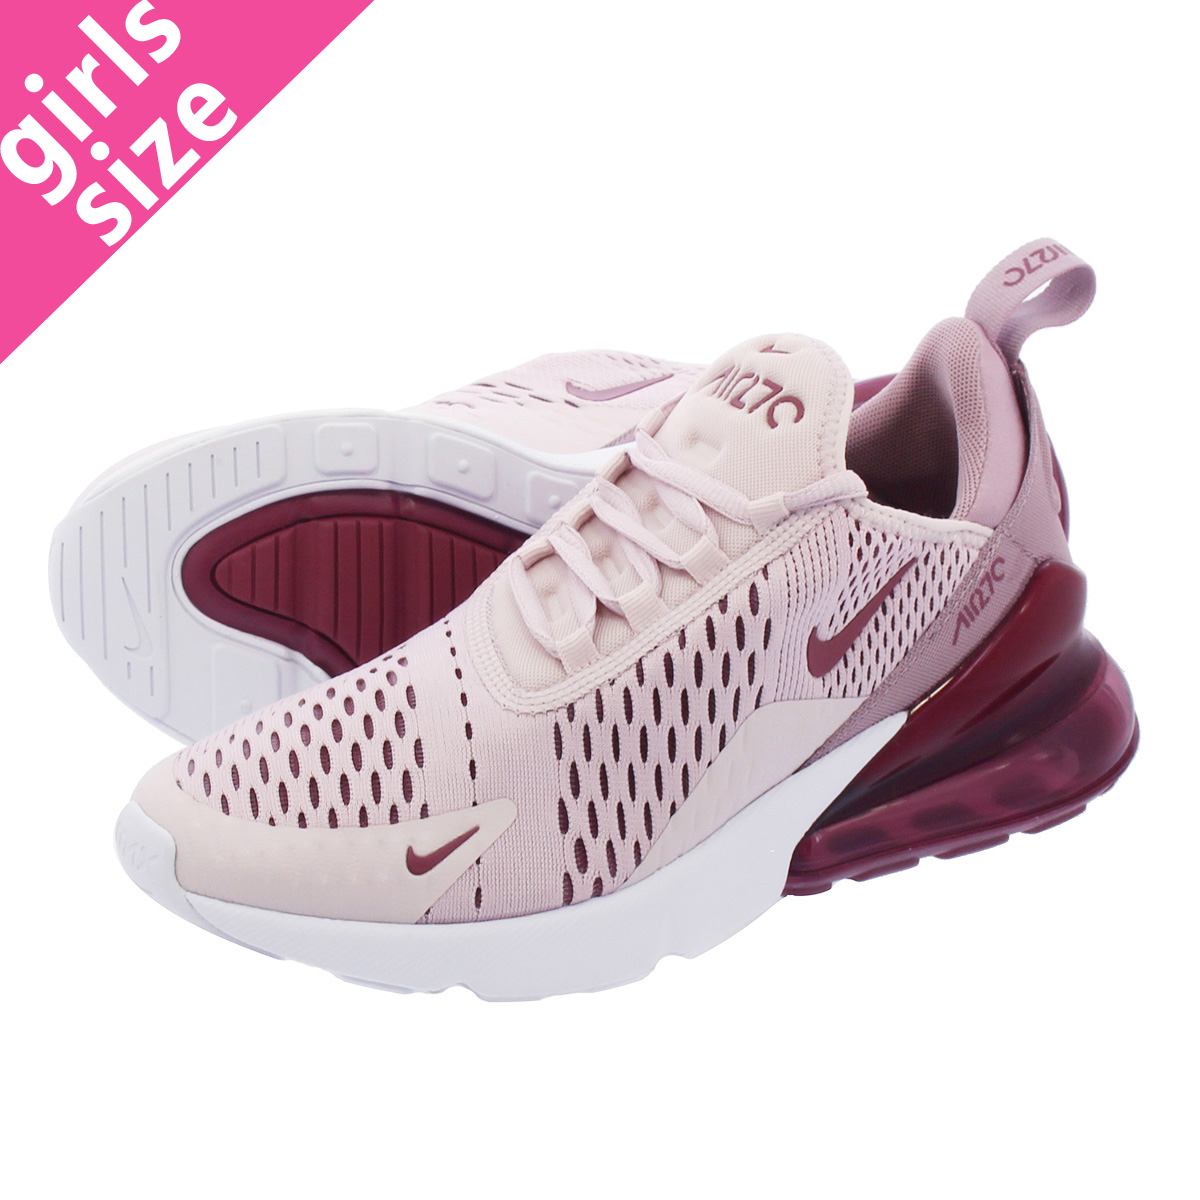 separation shoes f58af a7b26 NIKE WMNS AIR MAX 270 Nike women Air Max 270 BARELY ROSE/WHITE/VINTAGE WINE  ah6789-601-l